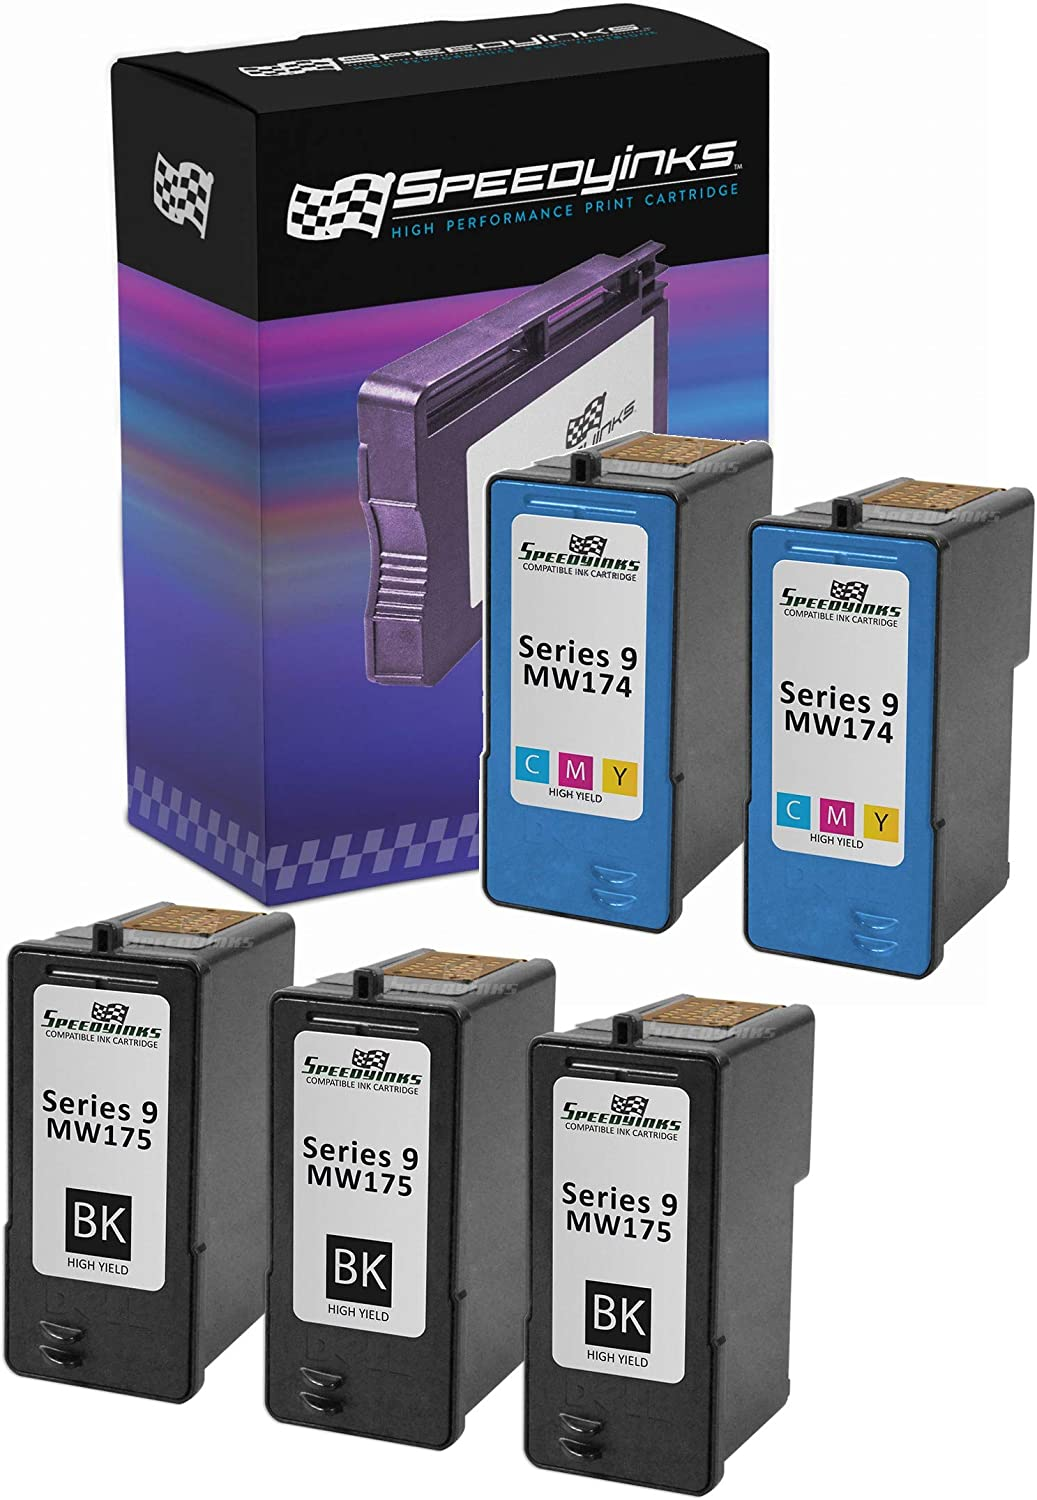 Speedy Inks Remanufactured Ink Cartridge Replacement for Dell MW175 and MW174 Series 9 High-Yield (3 Black, 2 Color, 5-Pack)